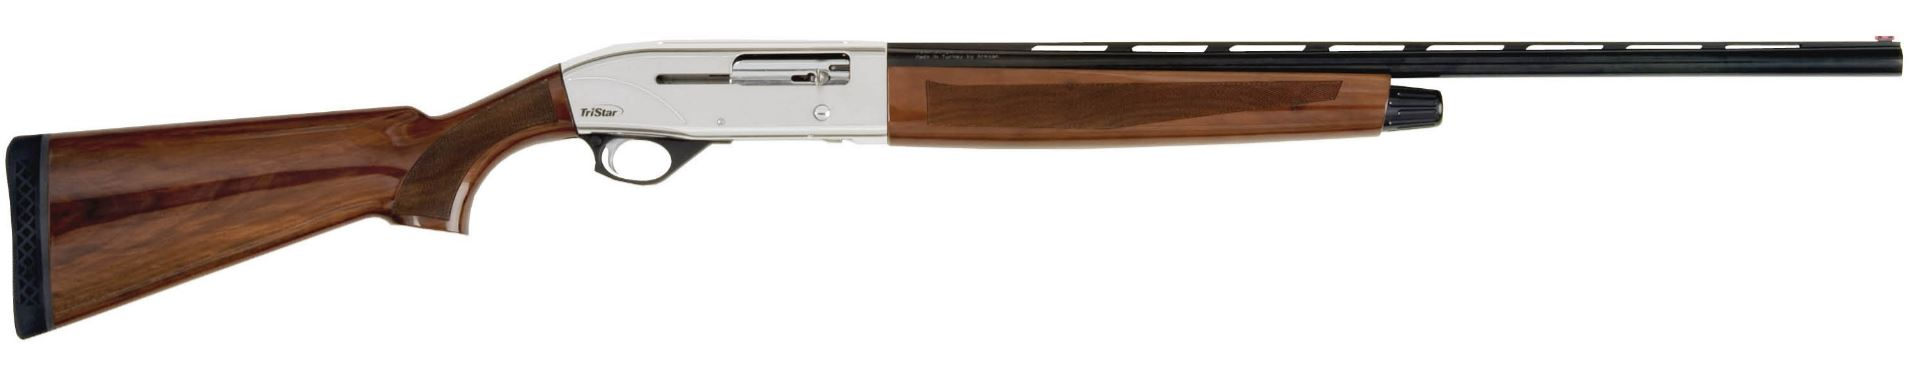 TriStar Sporting Arms Viper G2 Silver 12 Gauge